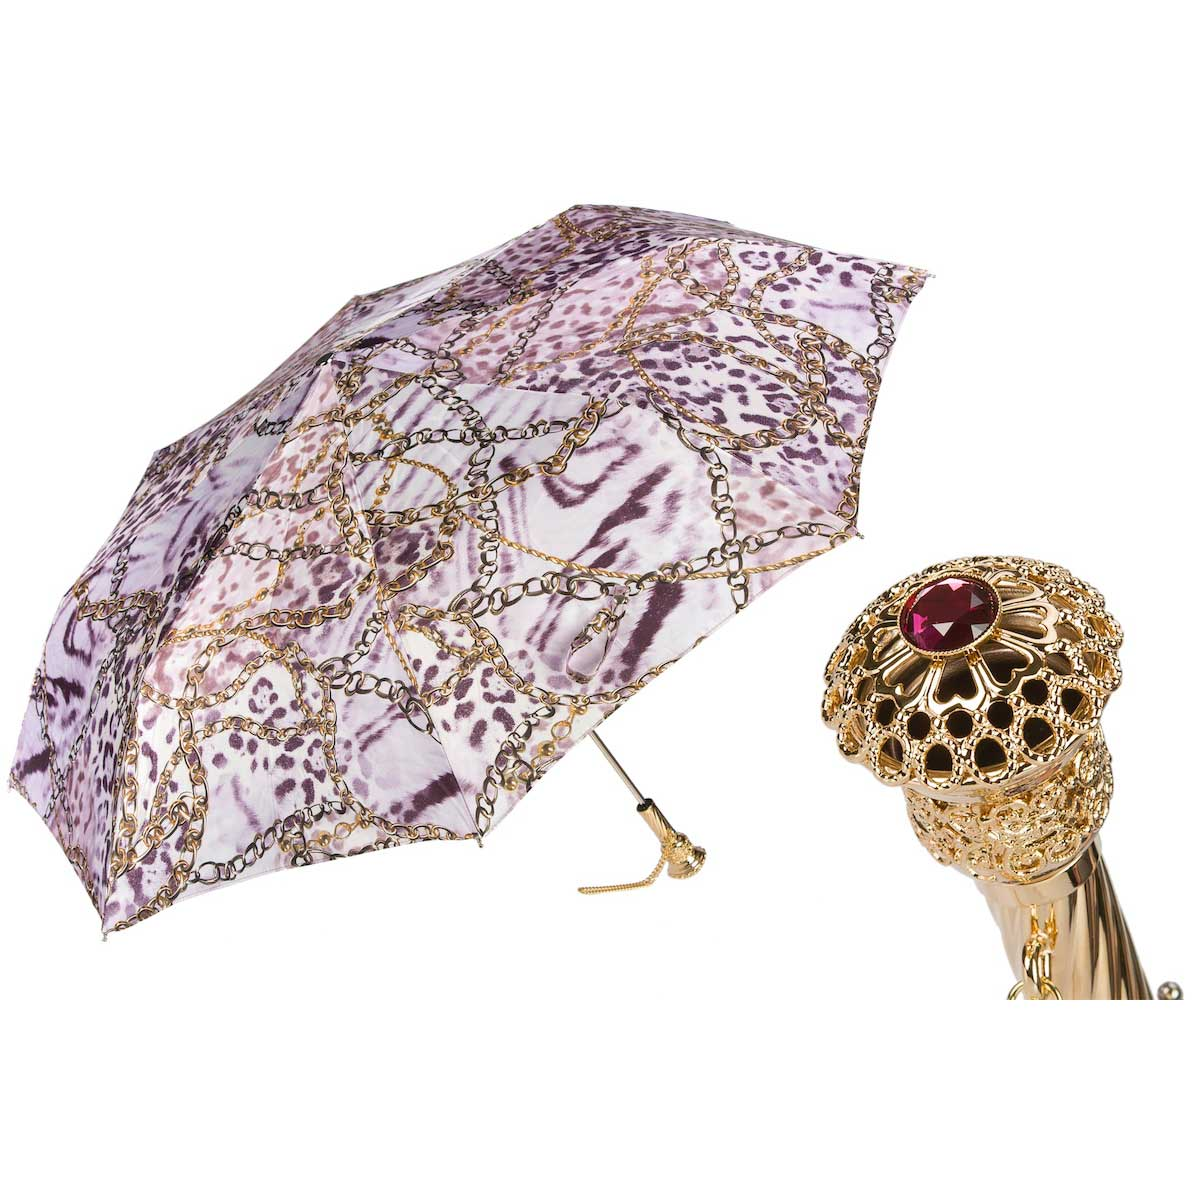 Pasotti Spotted Women's Folding Mini-Umbrella